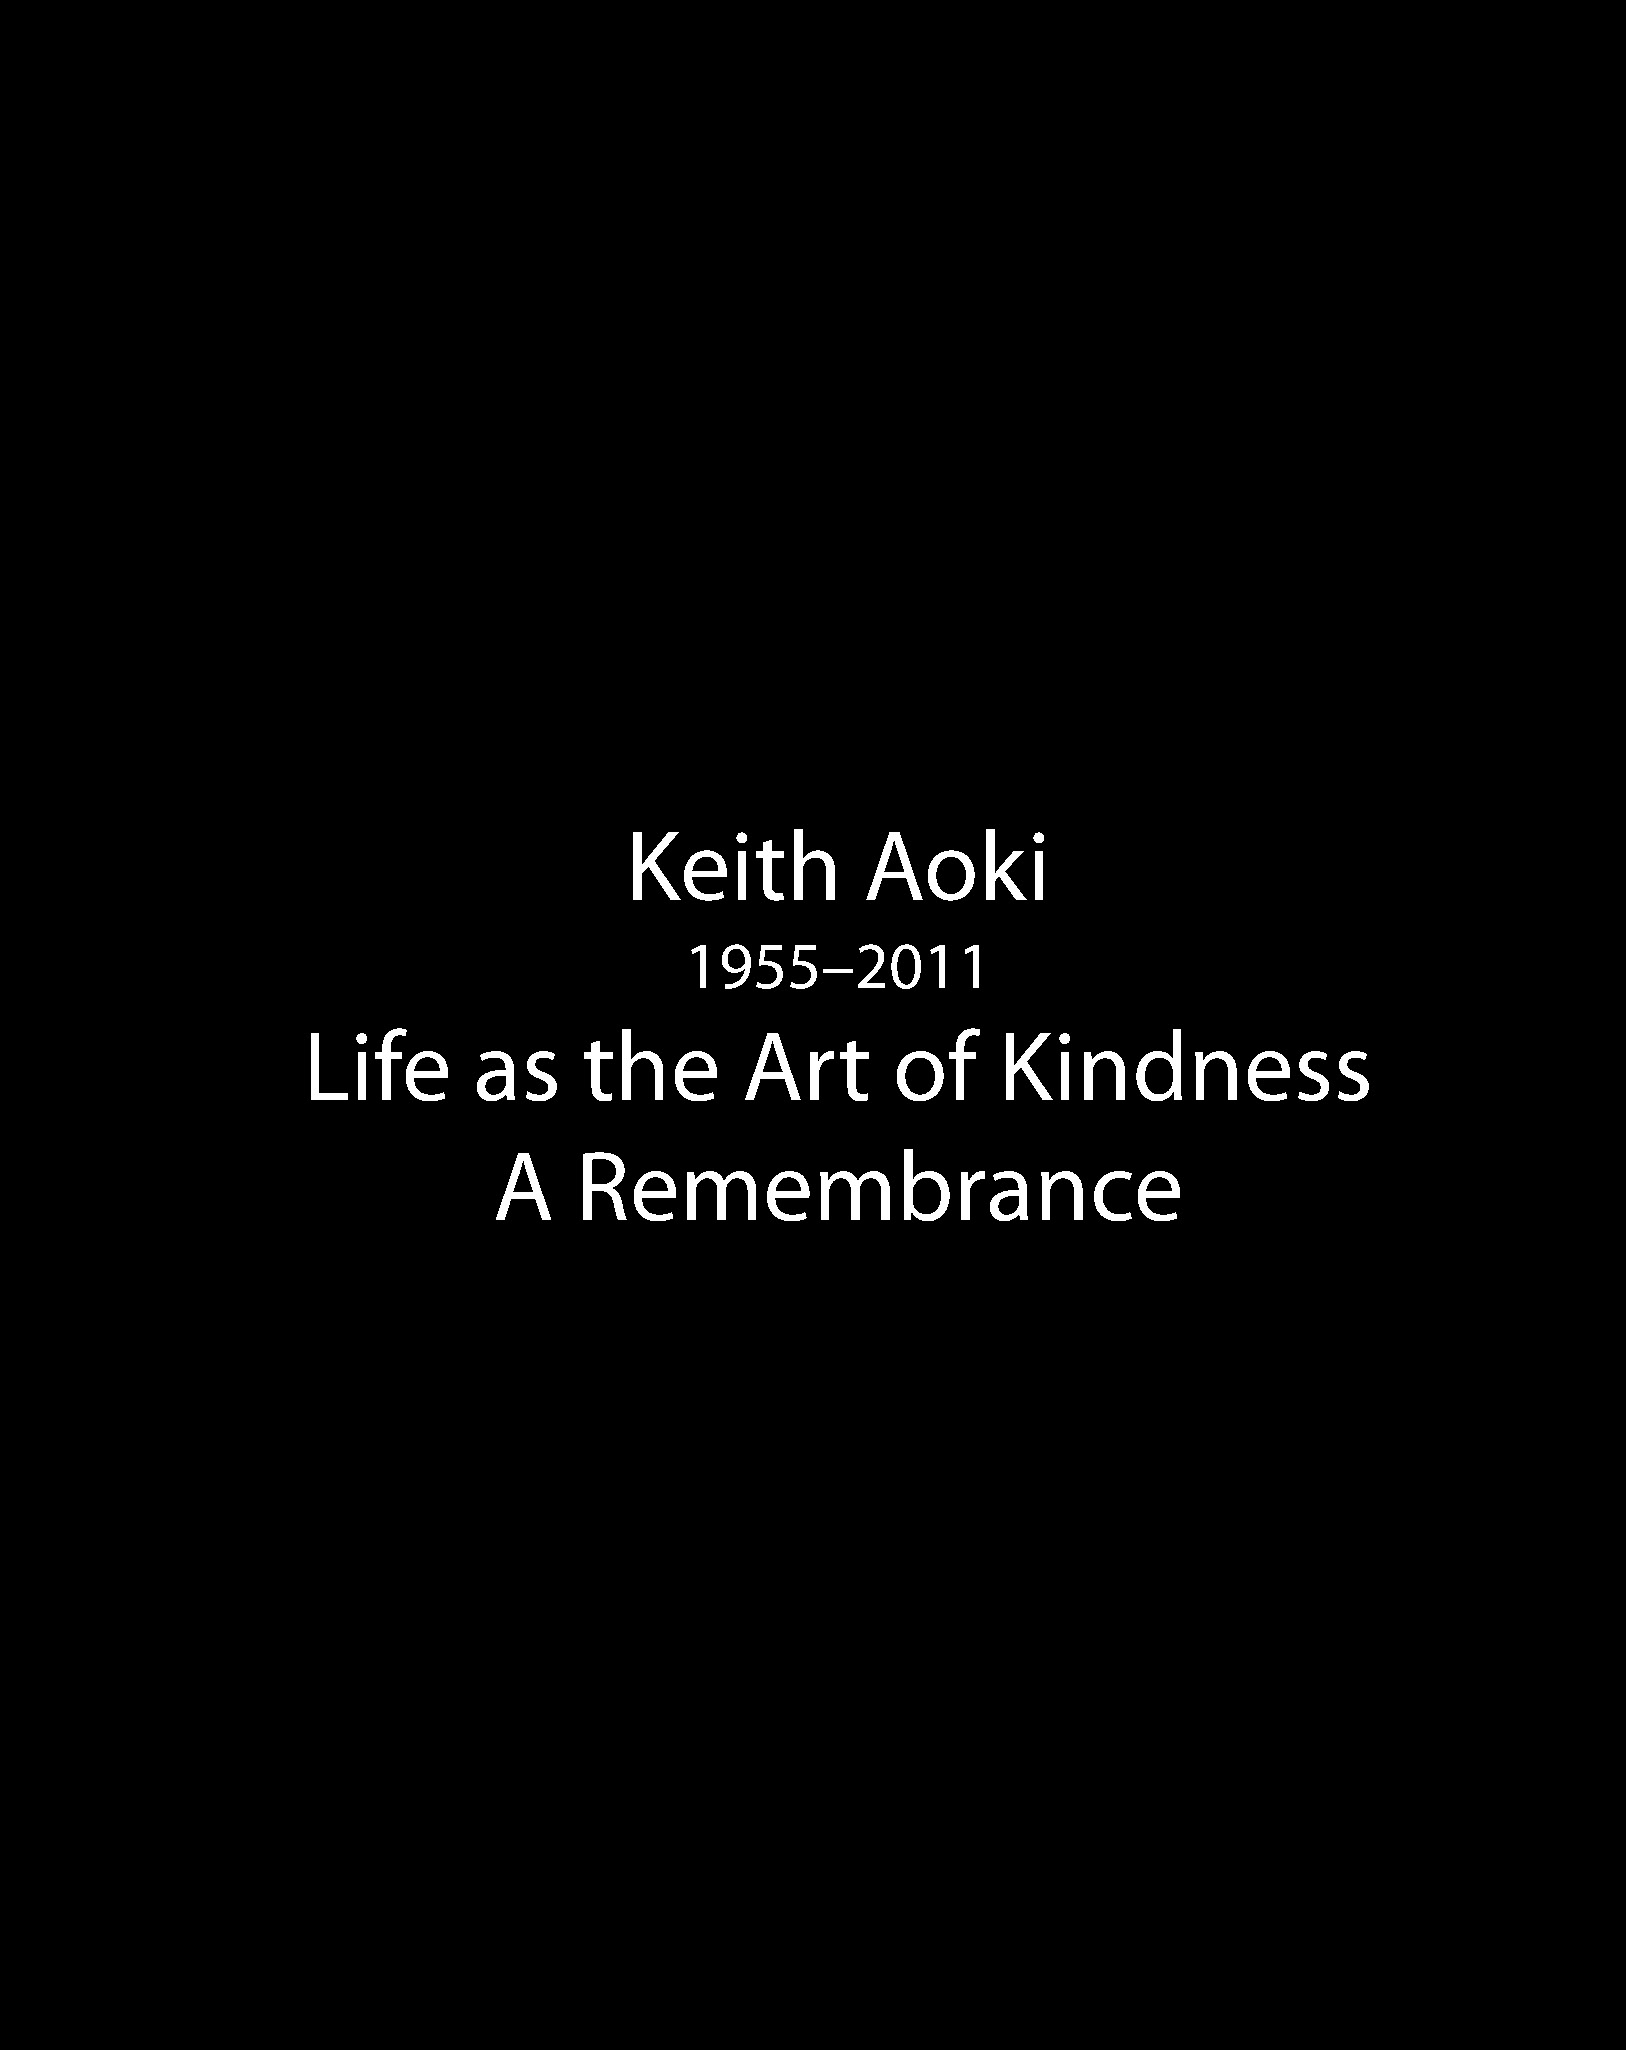 keithaokiremembrance_page_02